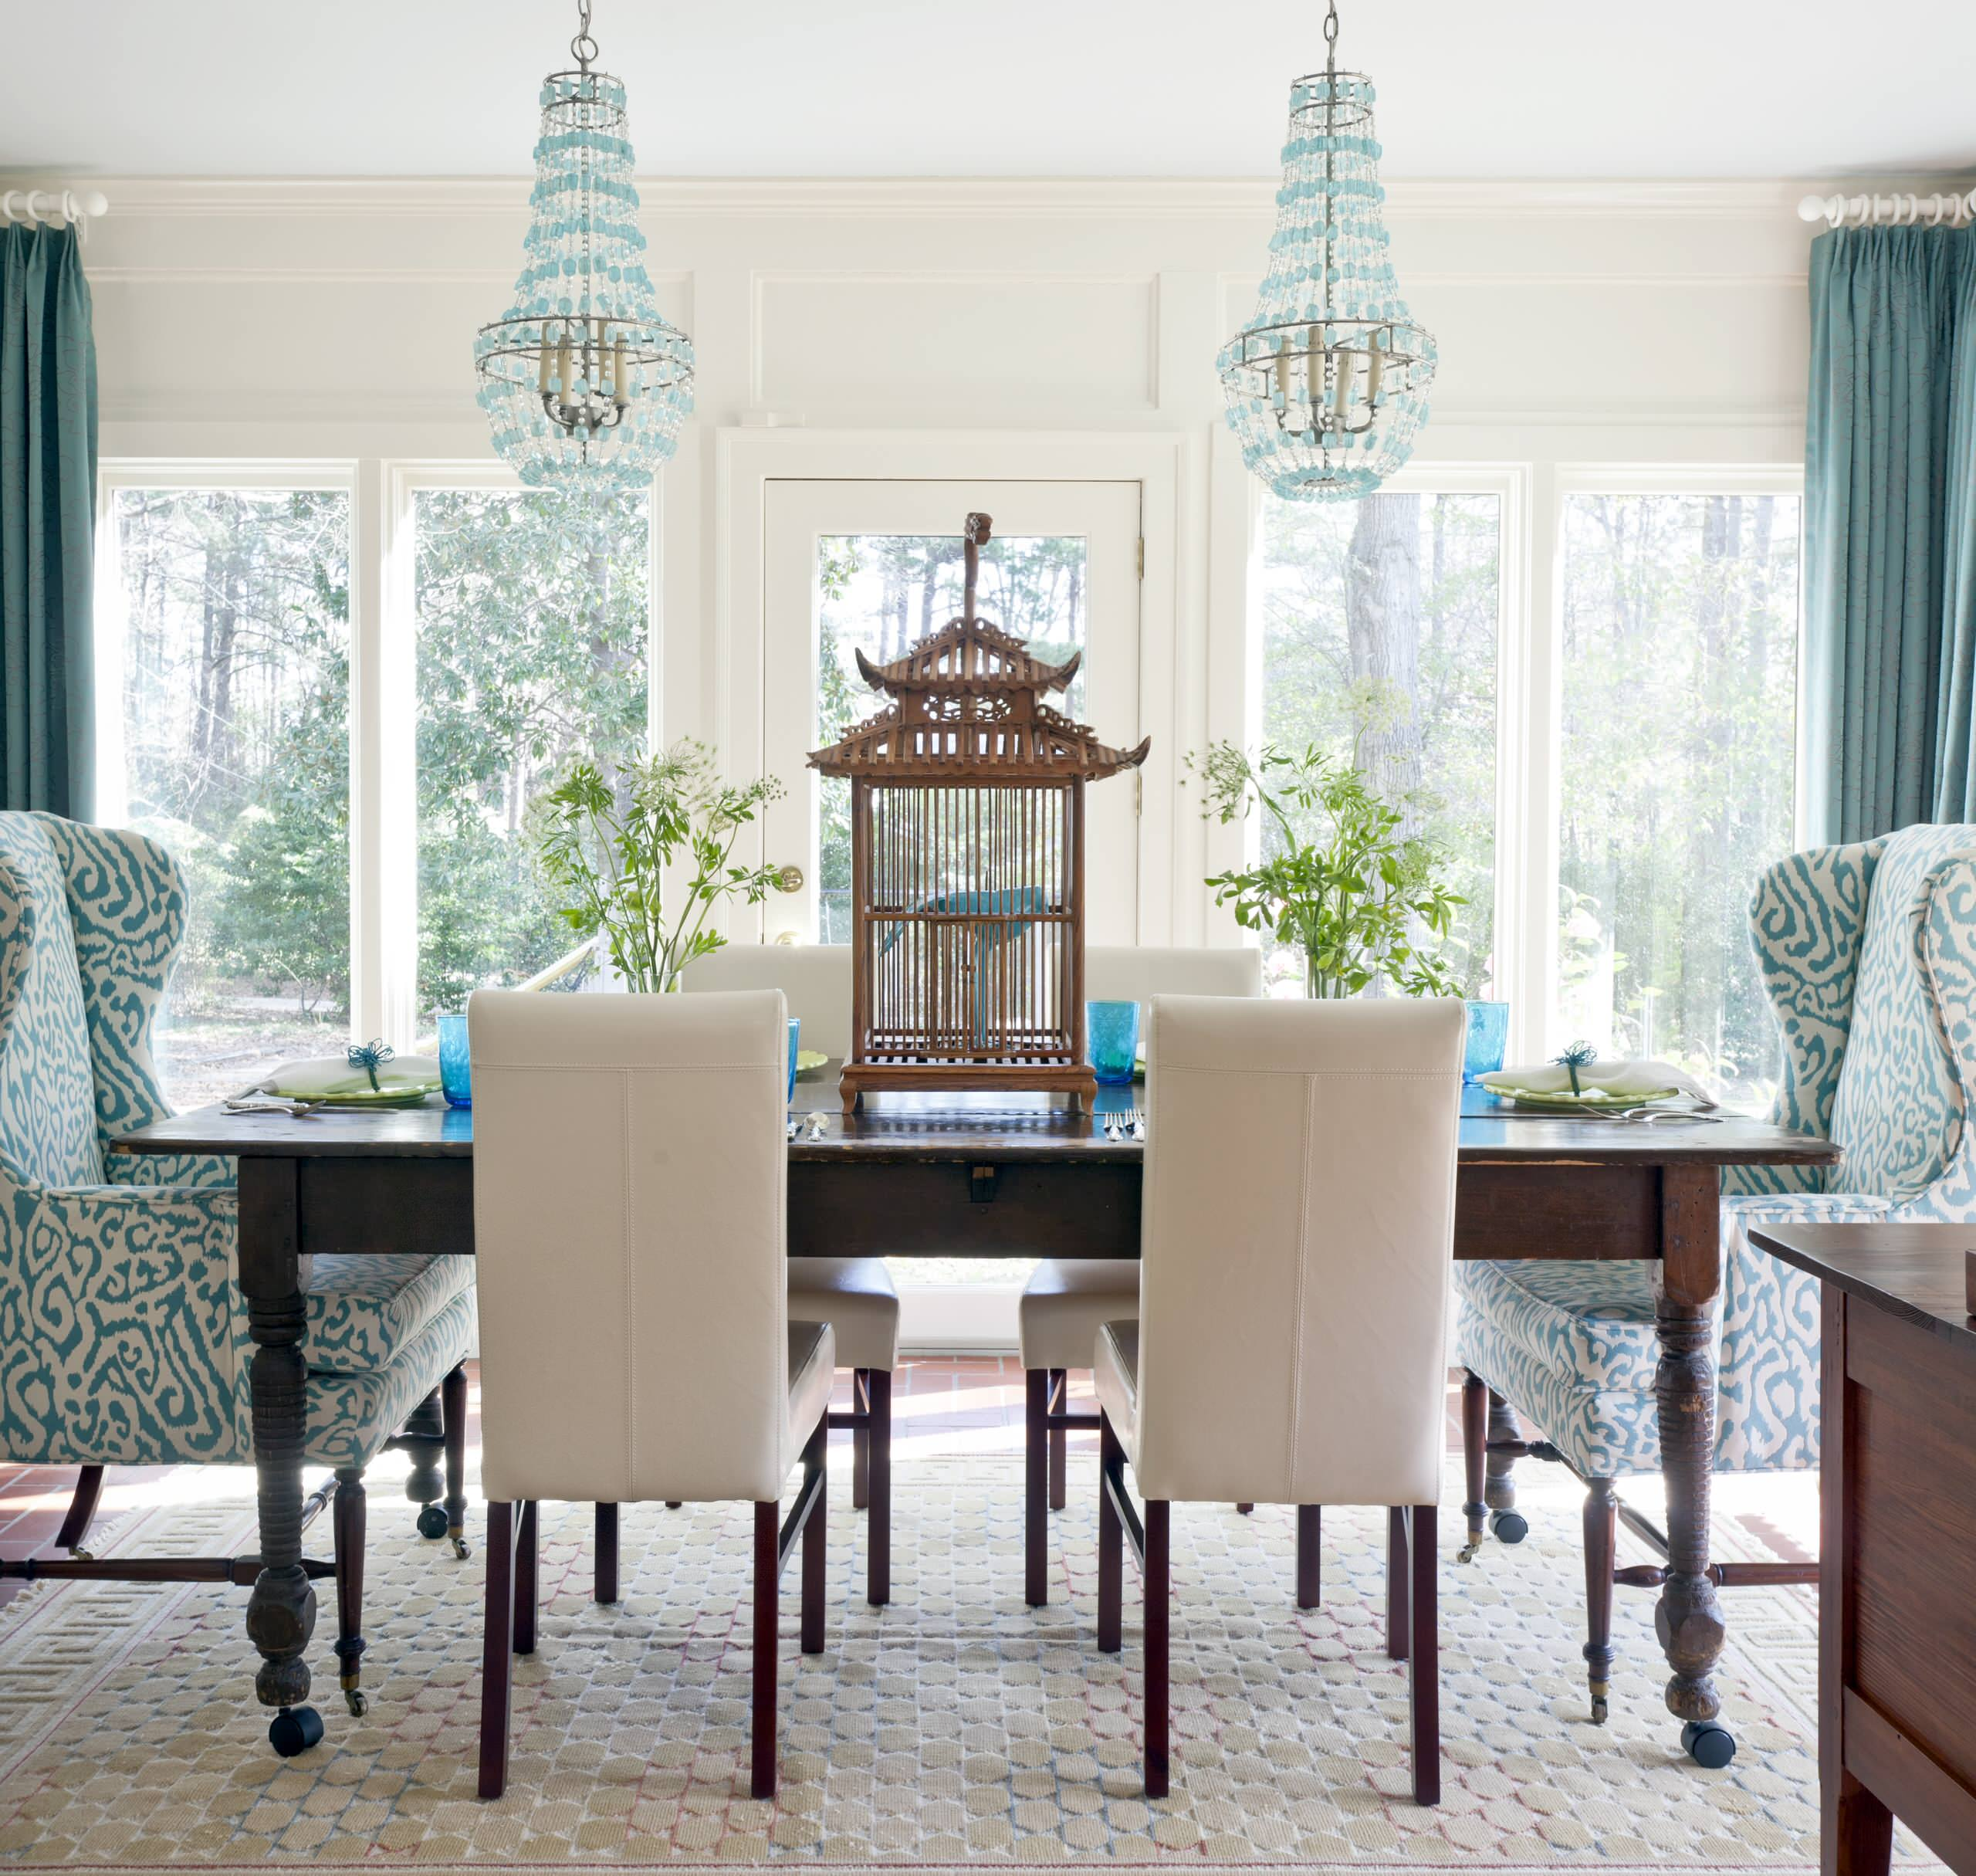 Picture of: Host Chair Houzz